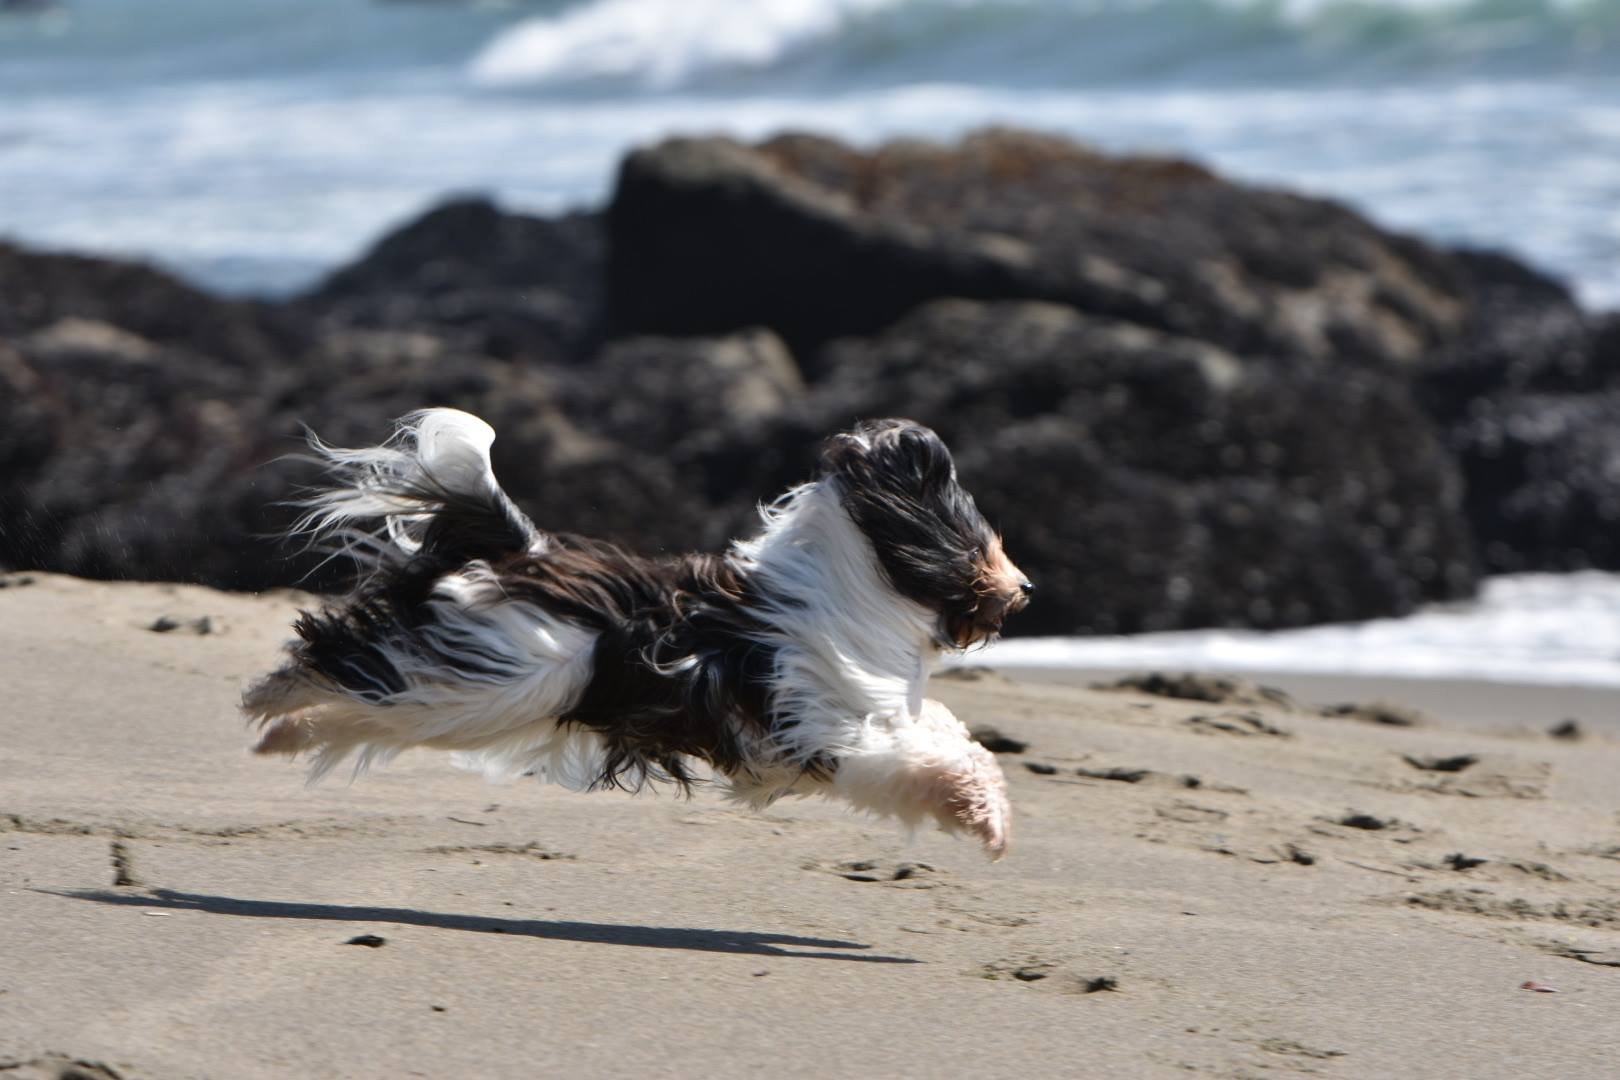 Tessa in flight